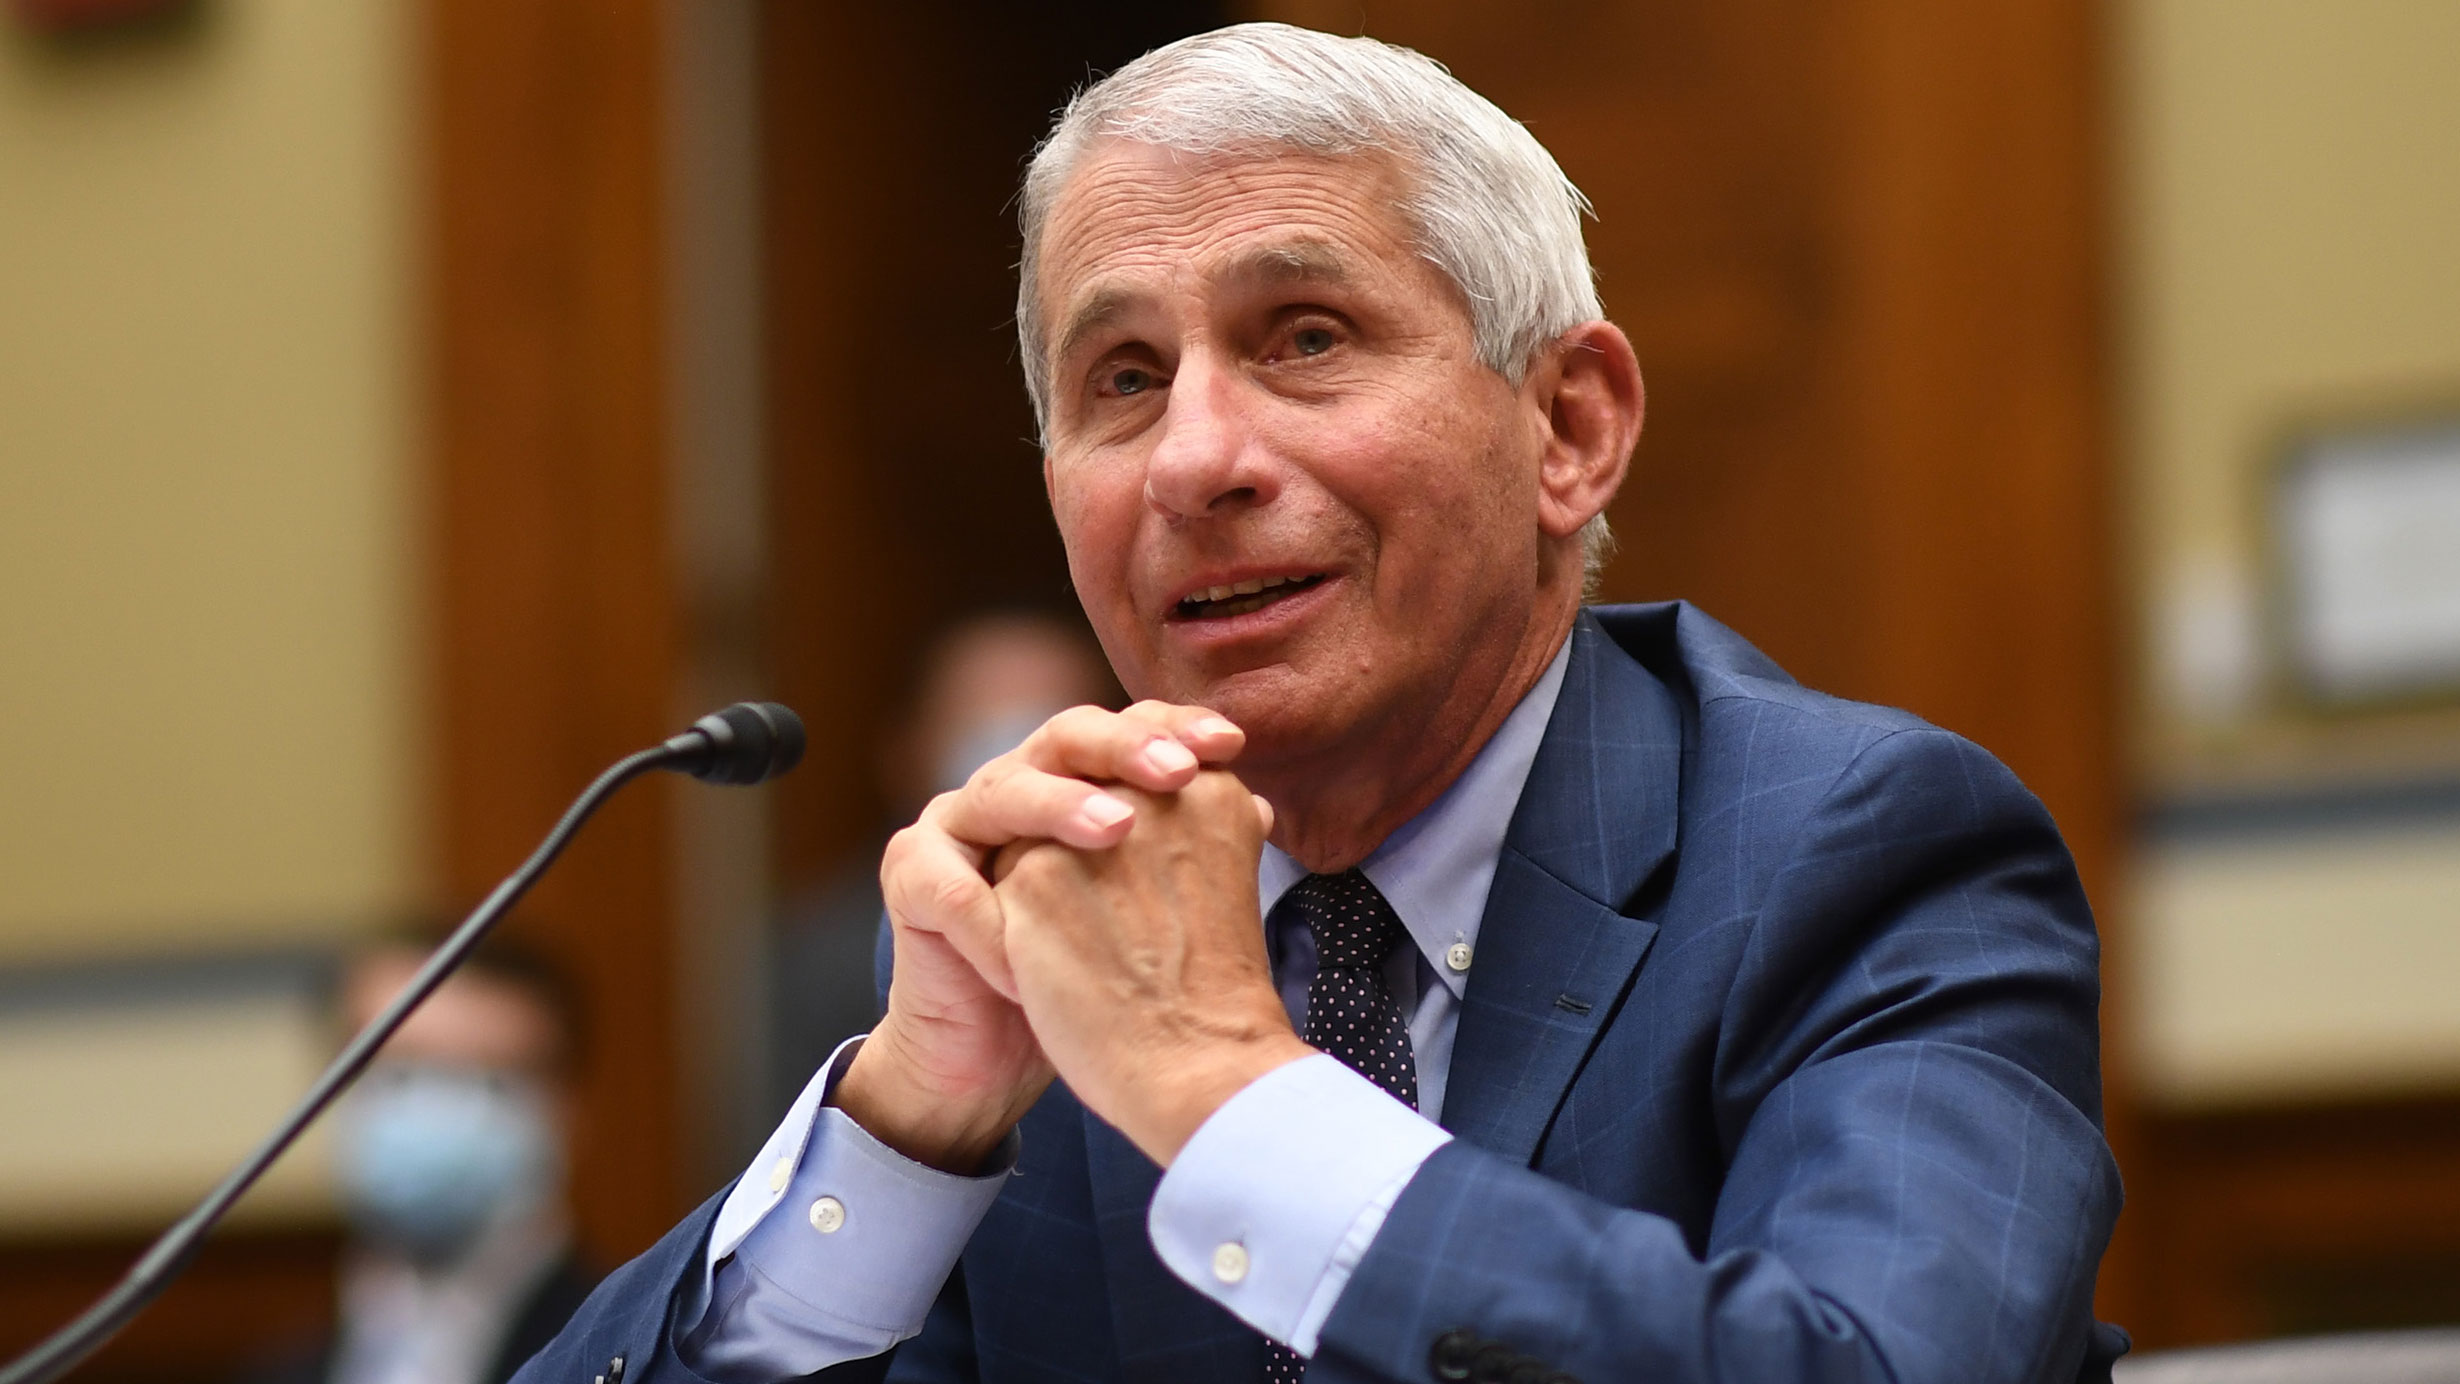 Dr. Anthony Fauci testifies during a House Subcommittee on the Coronavirus Crisis hearing on July 31 in Washington, DC.